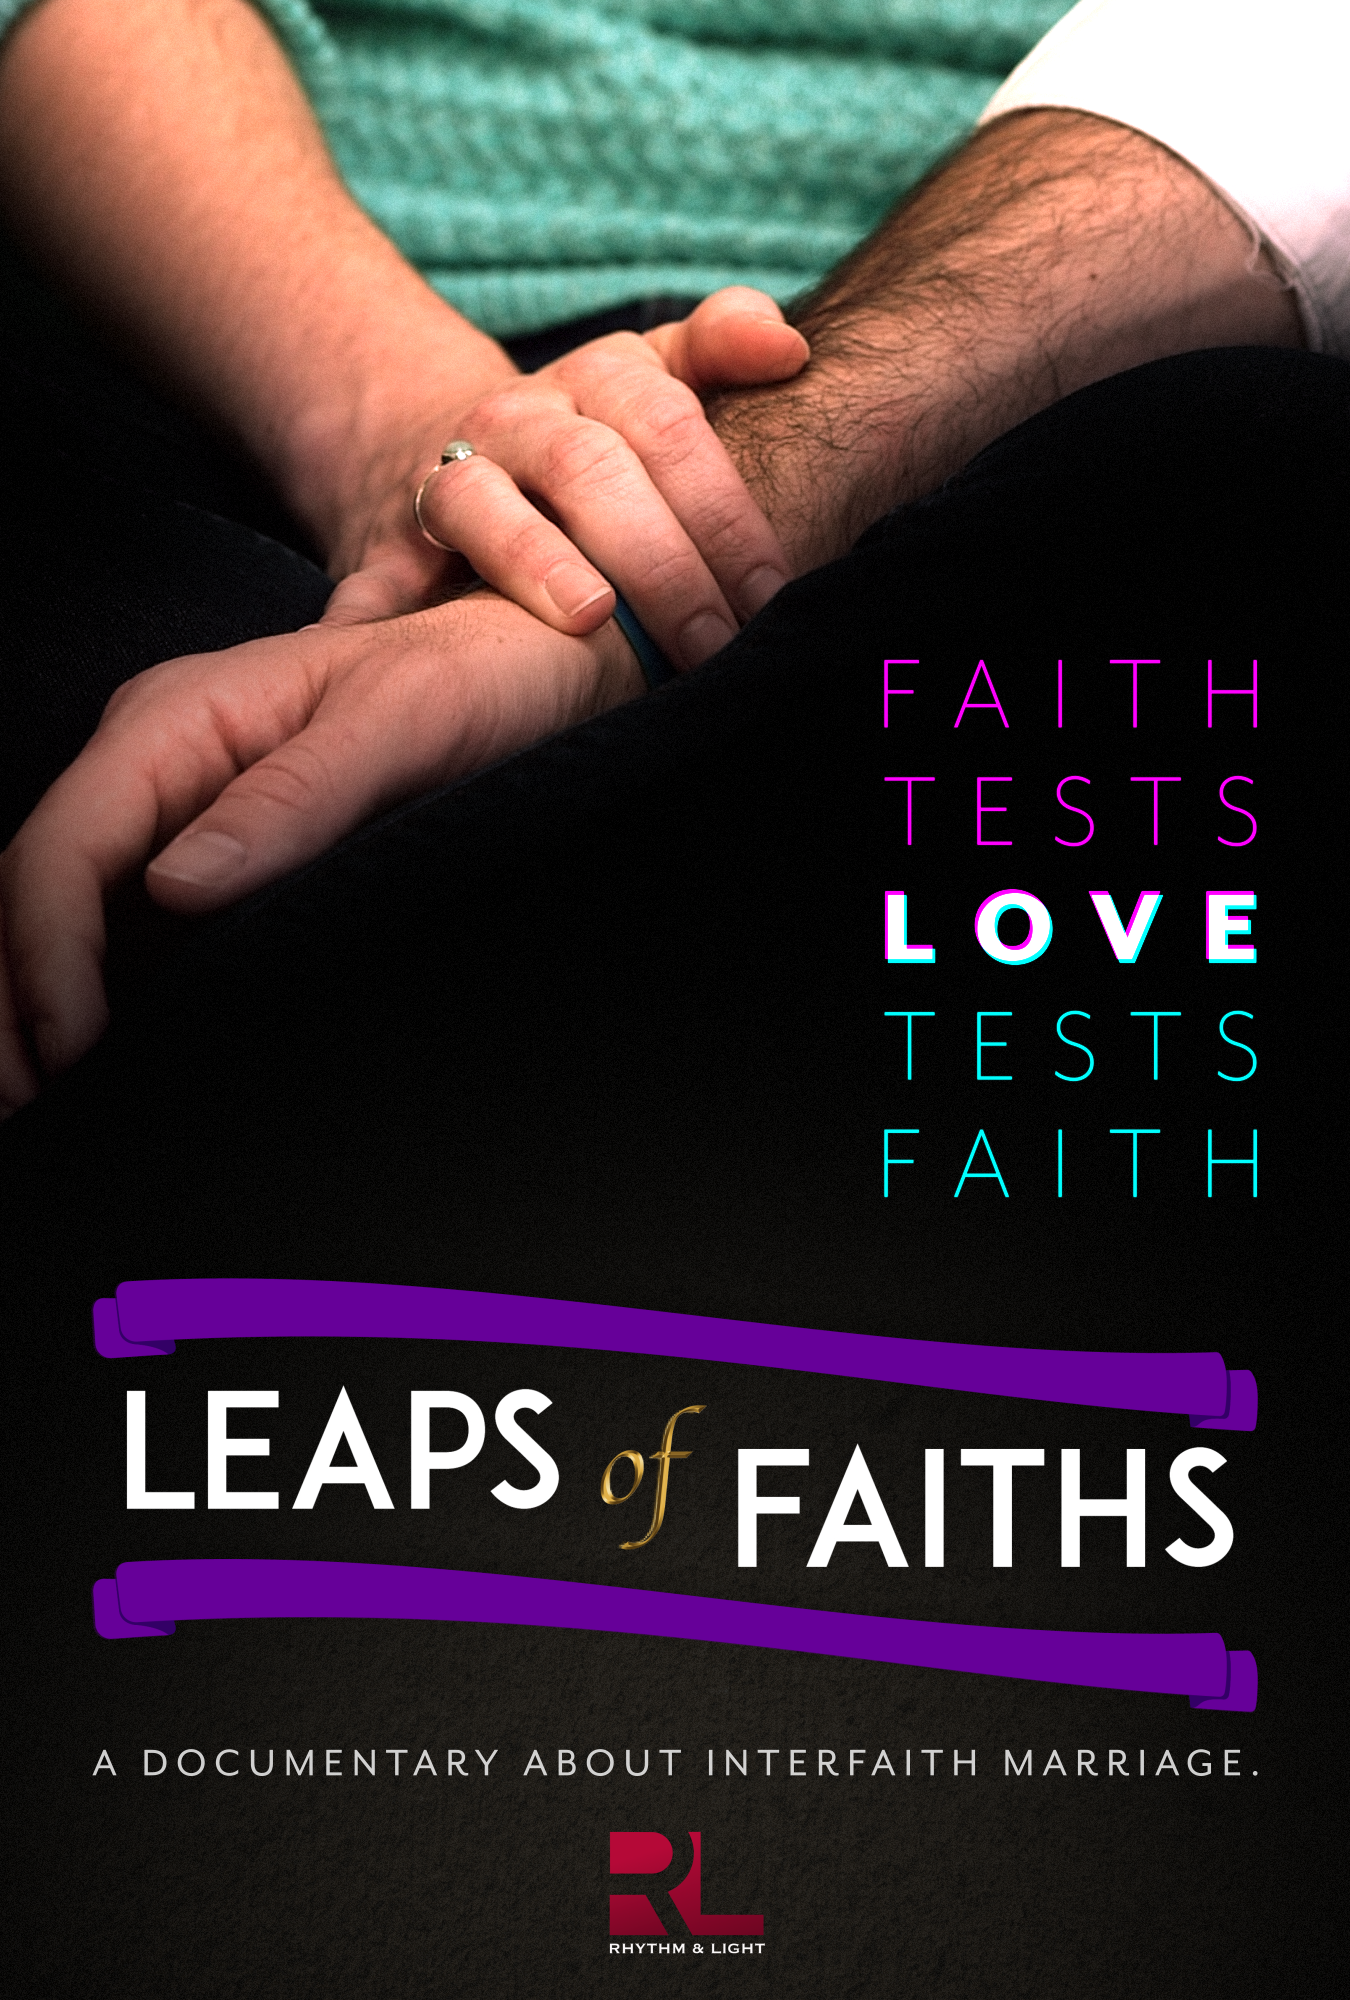 LEAPS OF FAITHS POSTER_tagline_6.16.18 copy.png